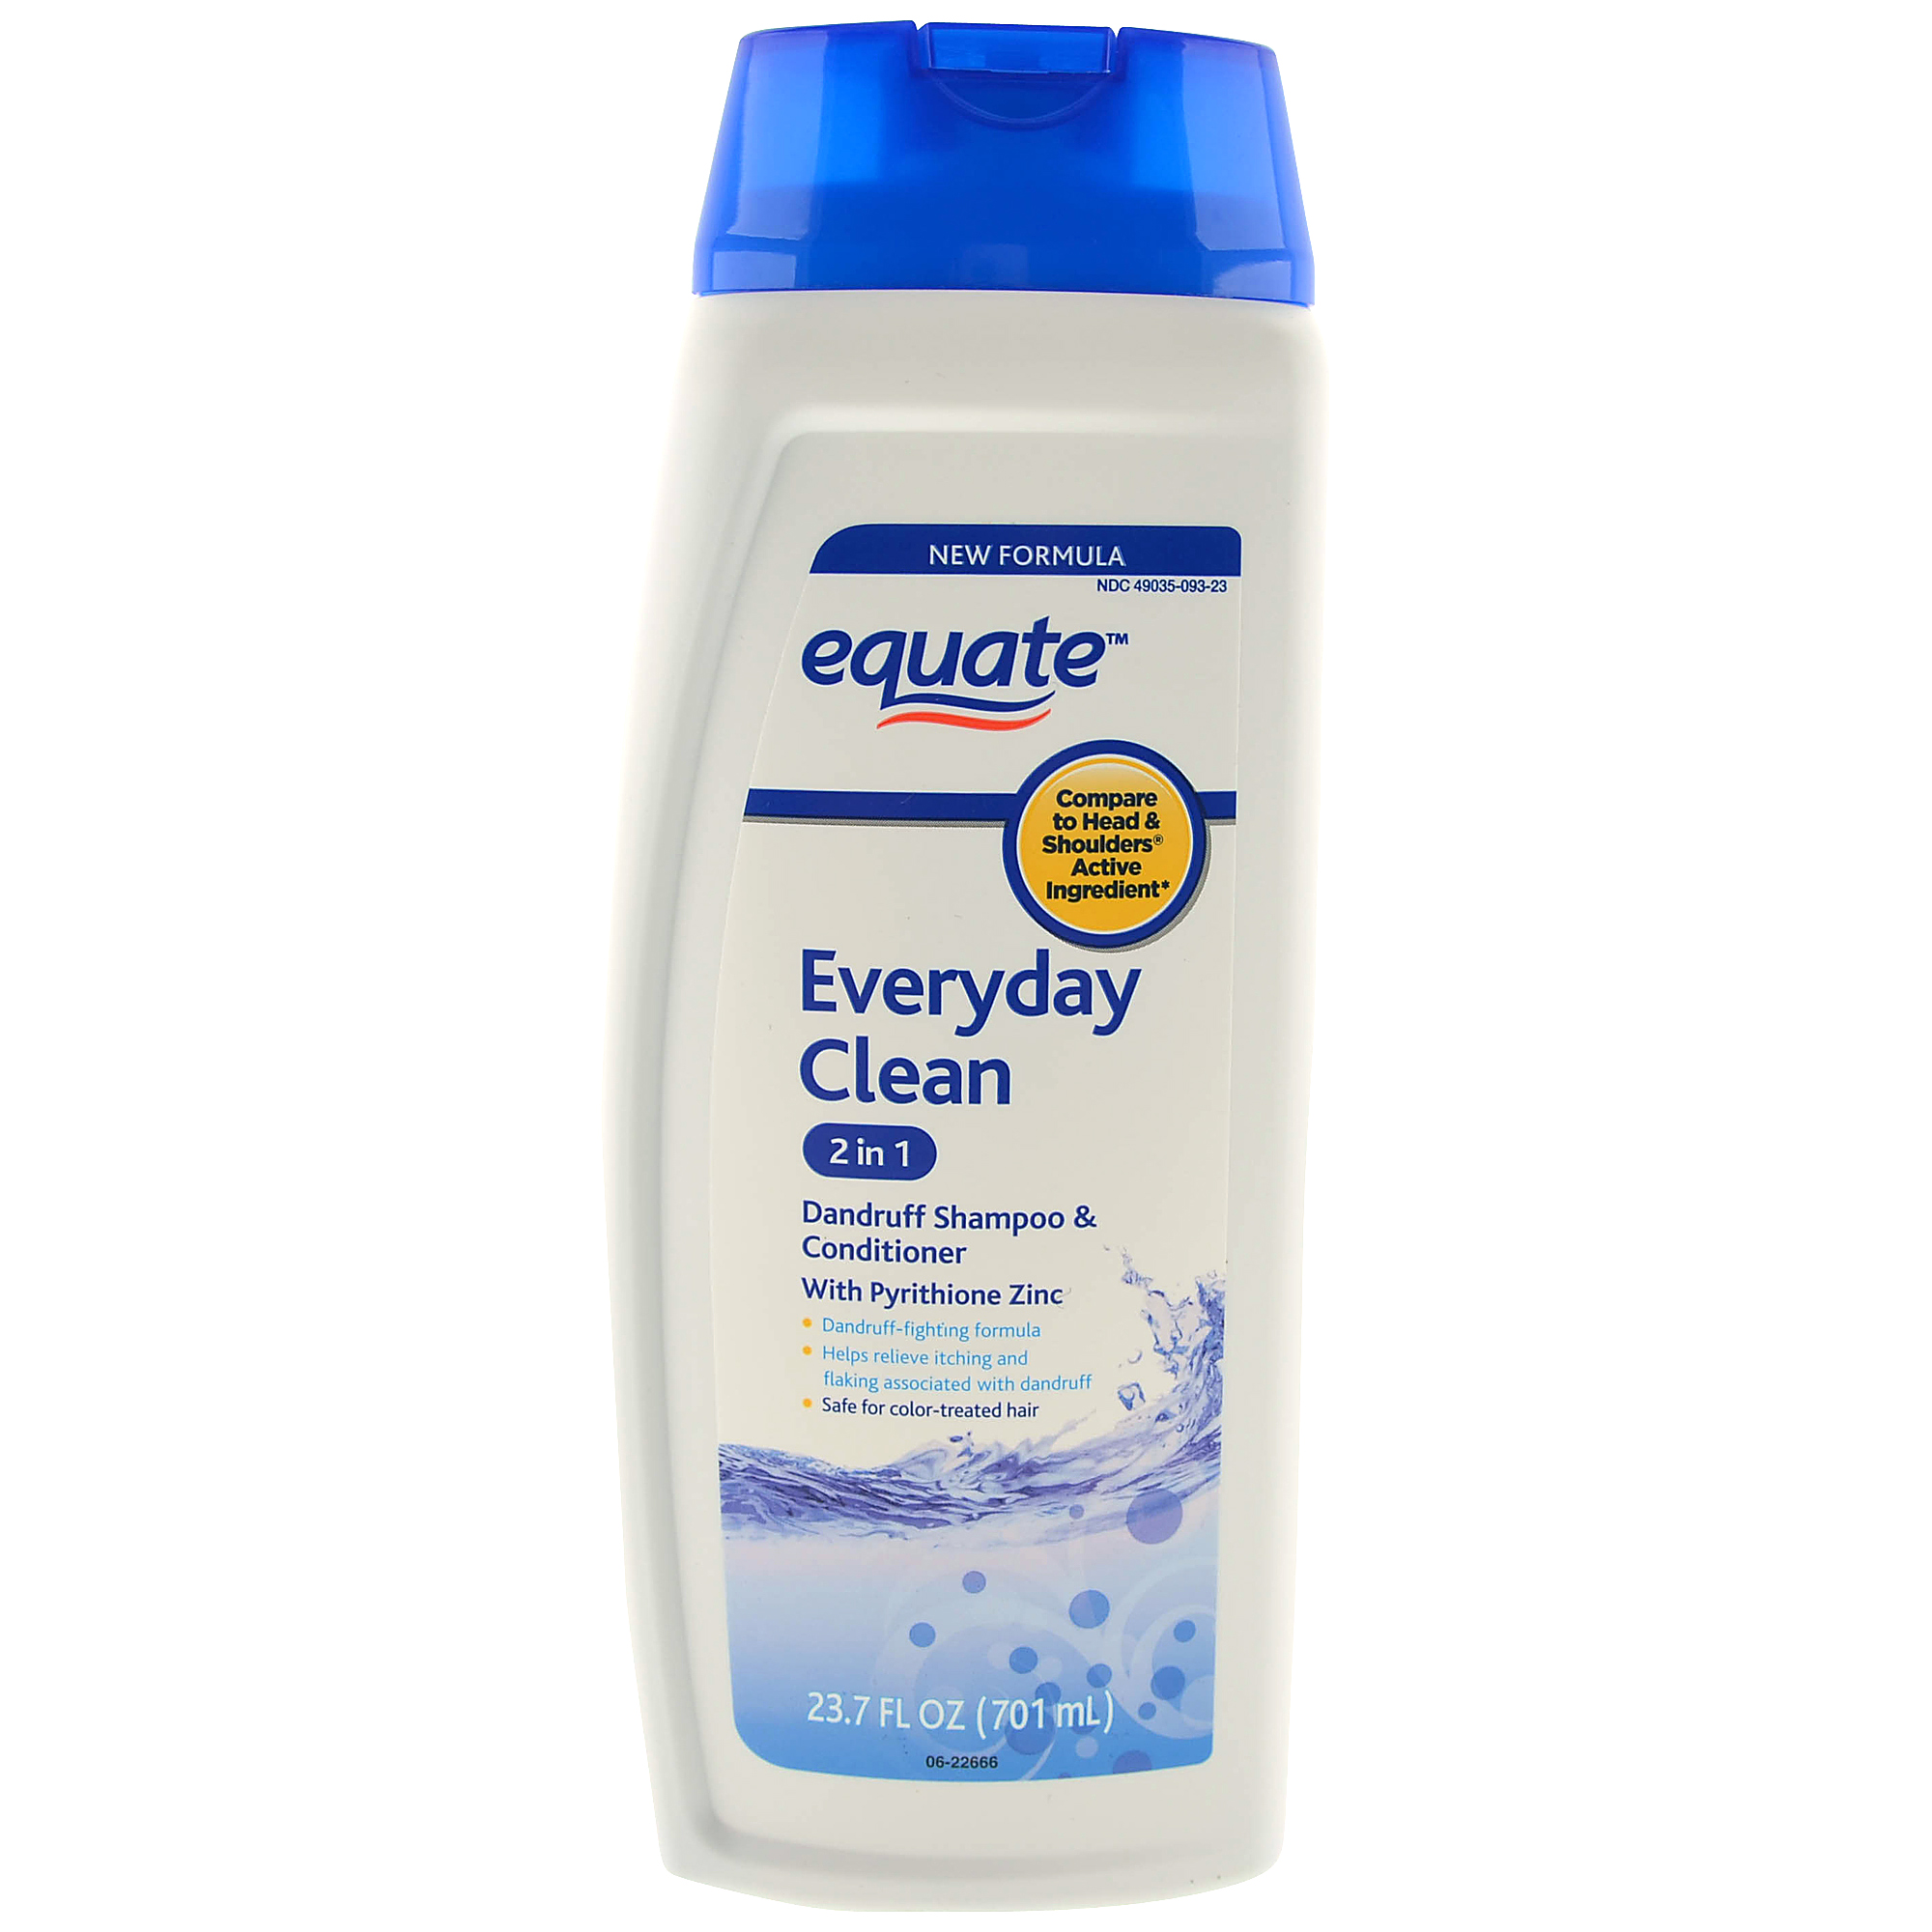 Equate Everyday Clean 2-in-1 Dandruff Shampoo and Conditioner, 23.7 fl oz